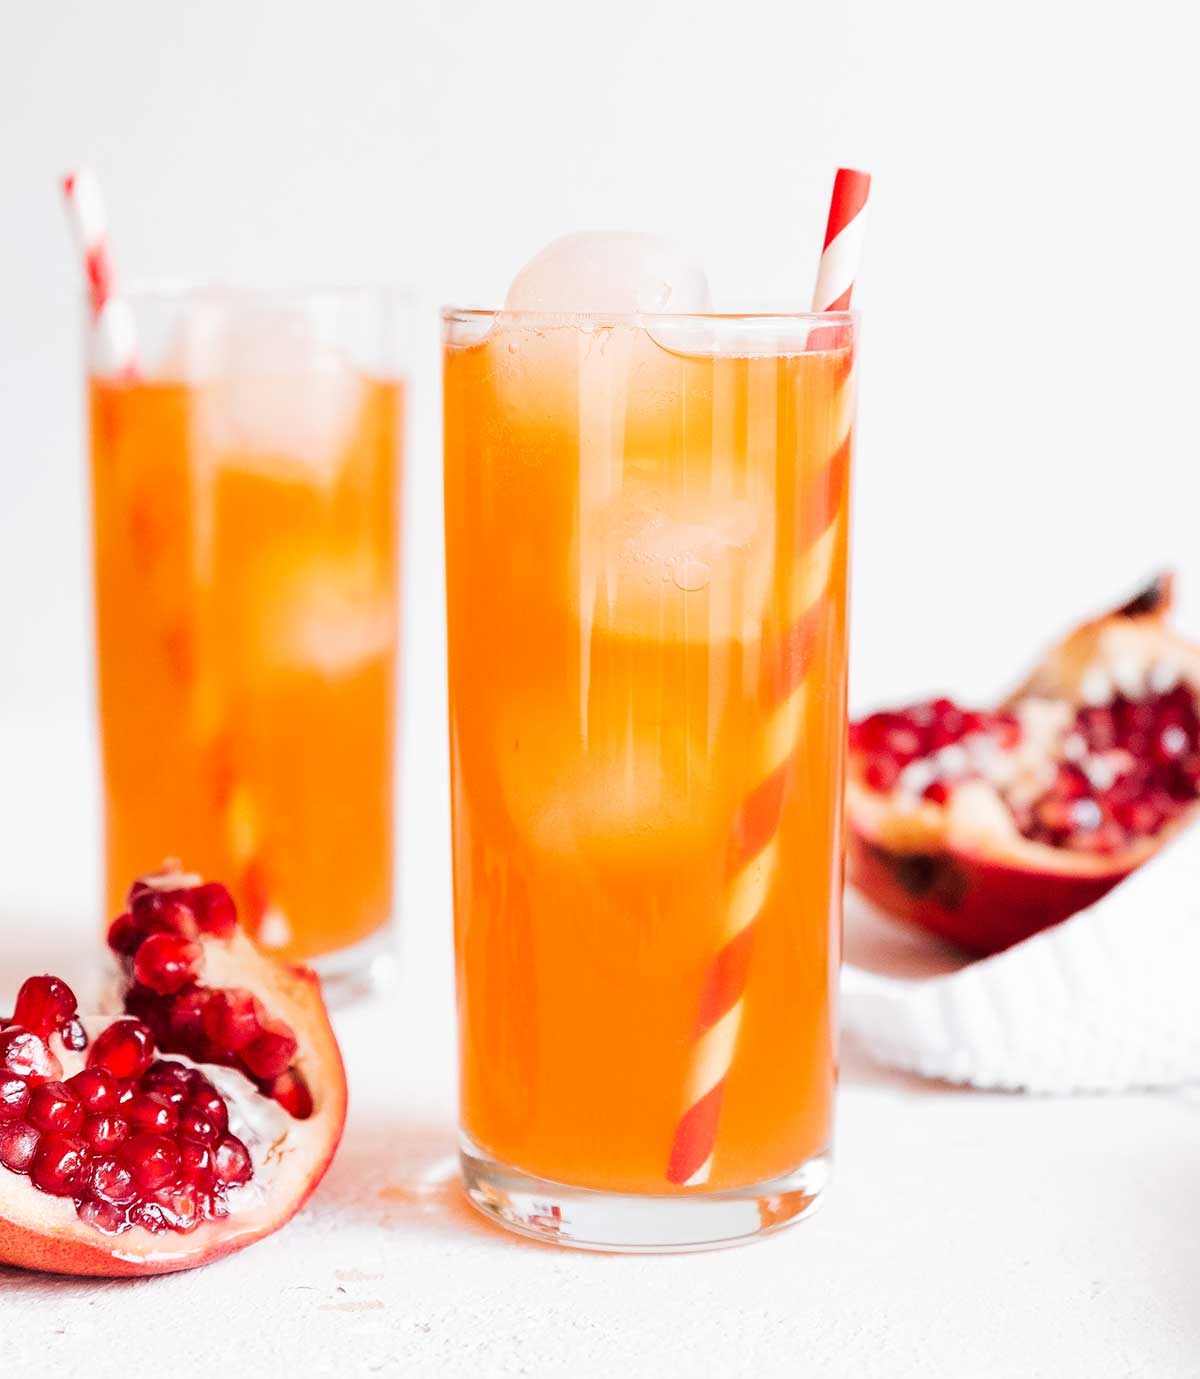 Pomegranate kombucha in a glass on white background